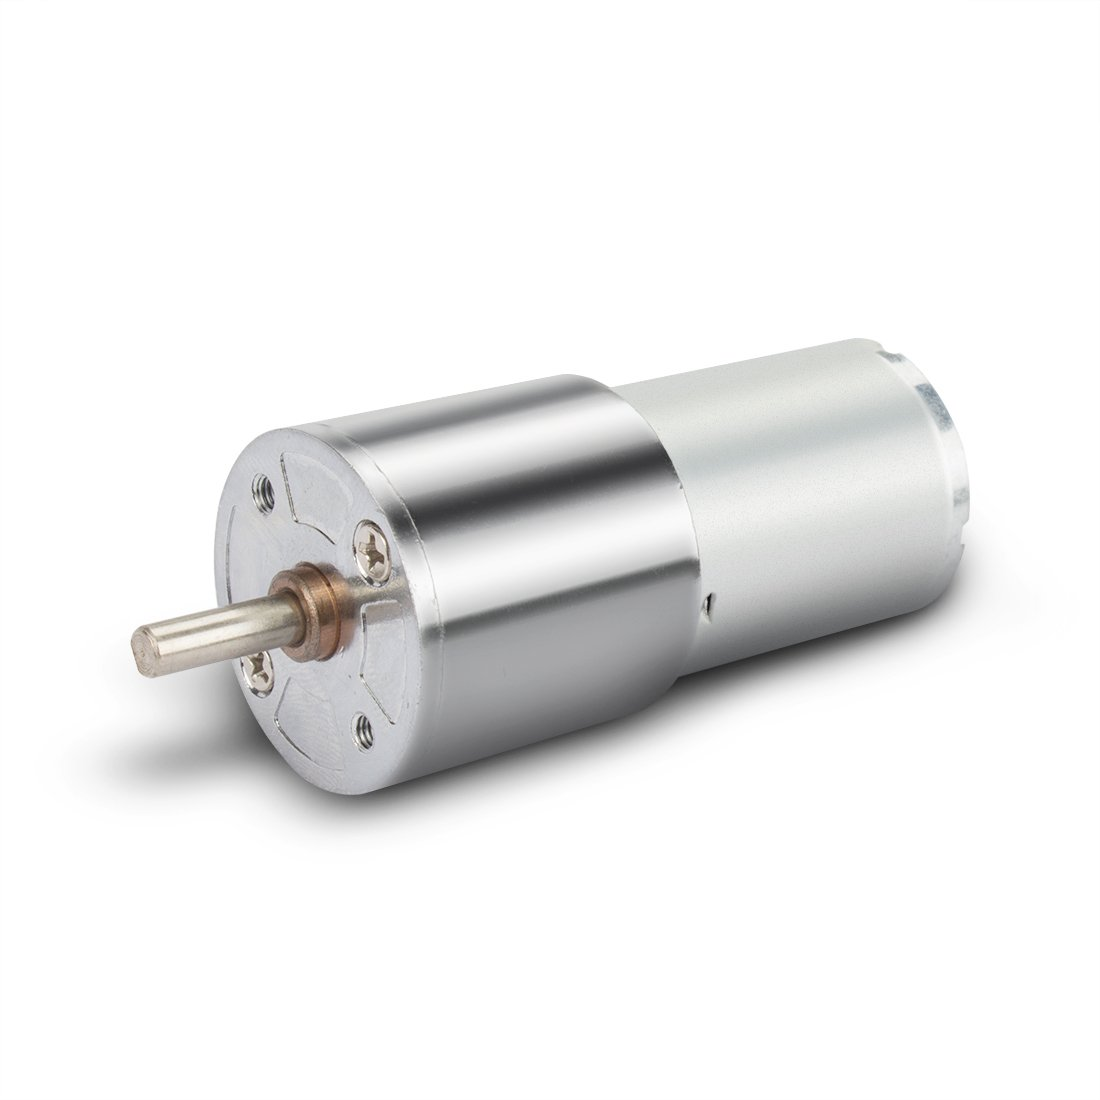 uxcell 10RPM DC 24V Micro Gear Box Motor Speed Reduction Centric Output Shaft with 4mm Diameter, 12mm Length, M3 Hole Size